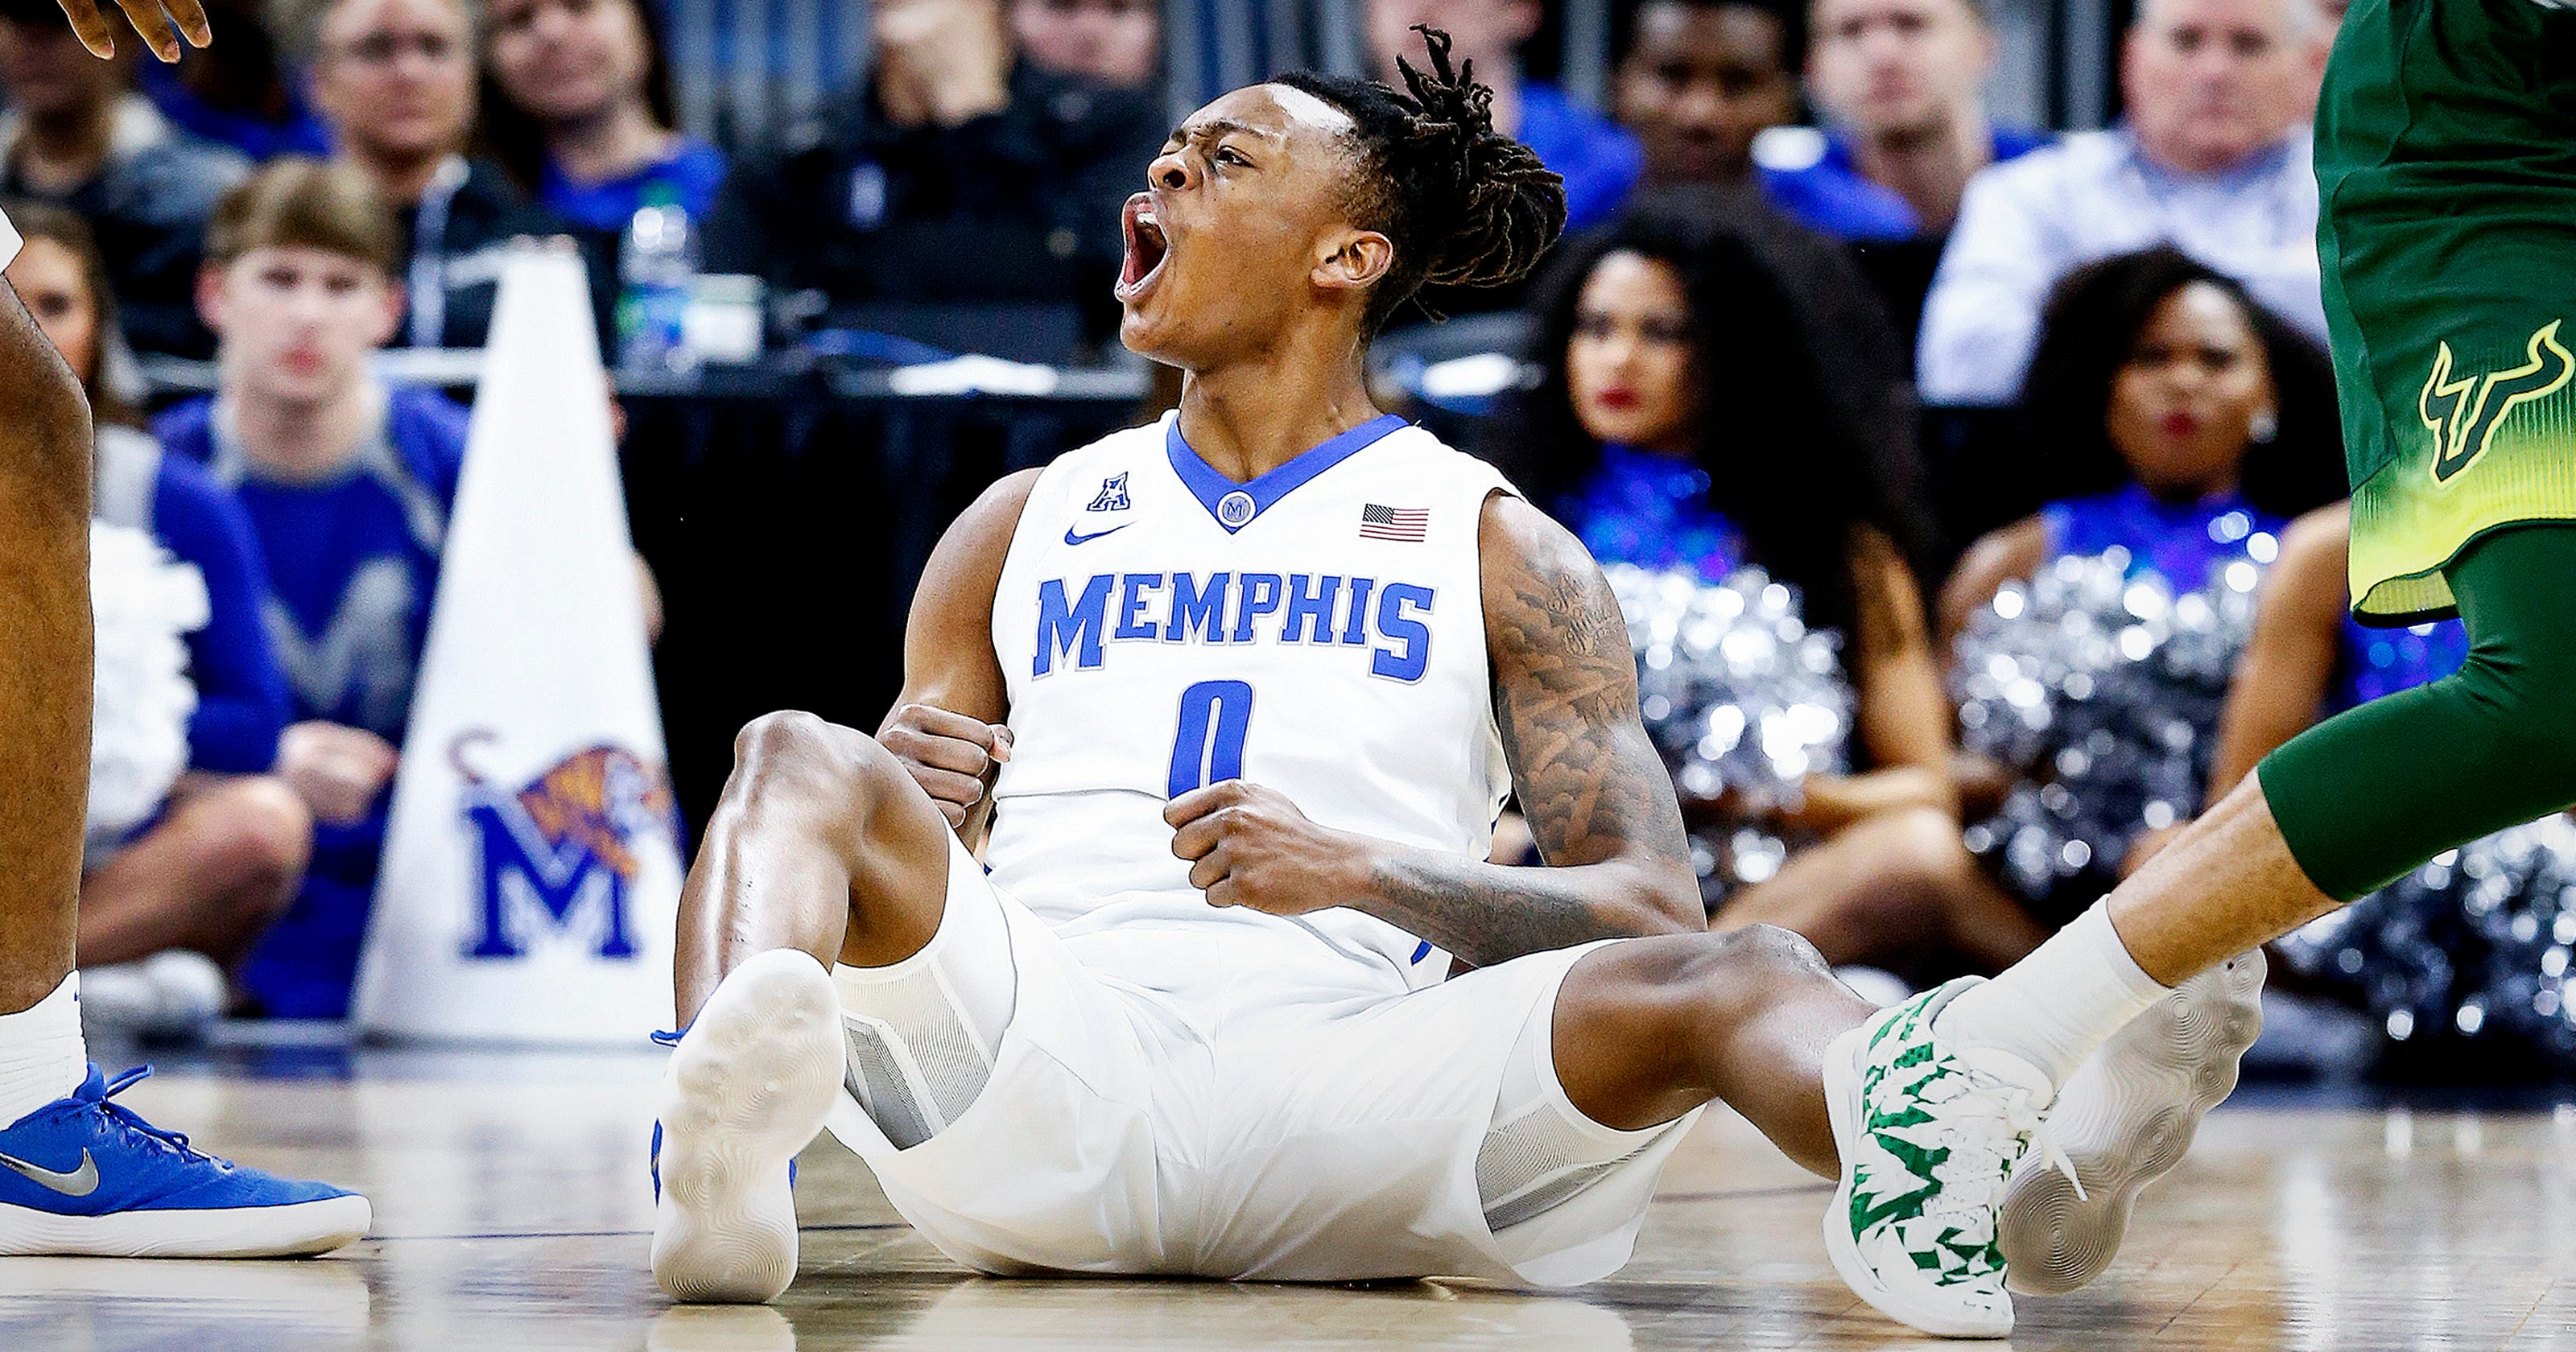 379d8bcfb73 Memphis basketball: Once a stranger to the sport, Kyvon Davenport now a  Tigers star